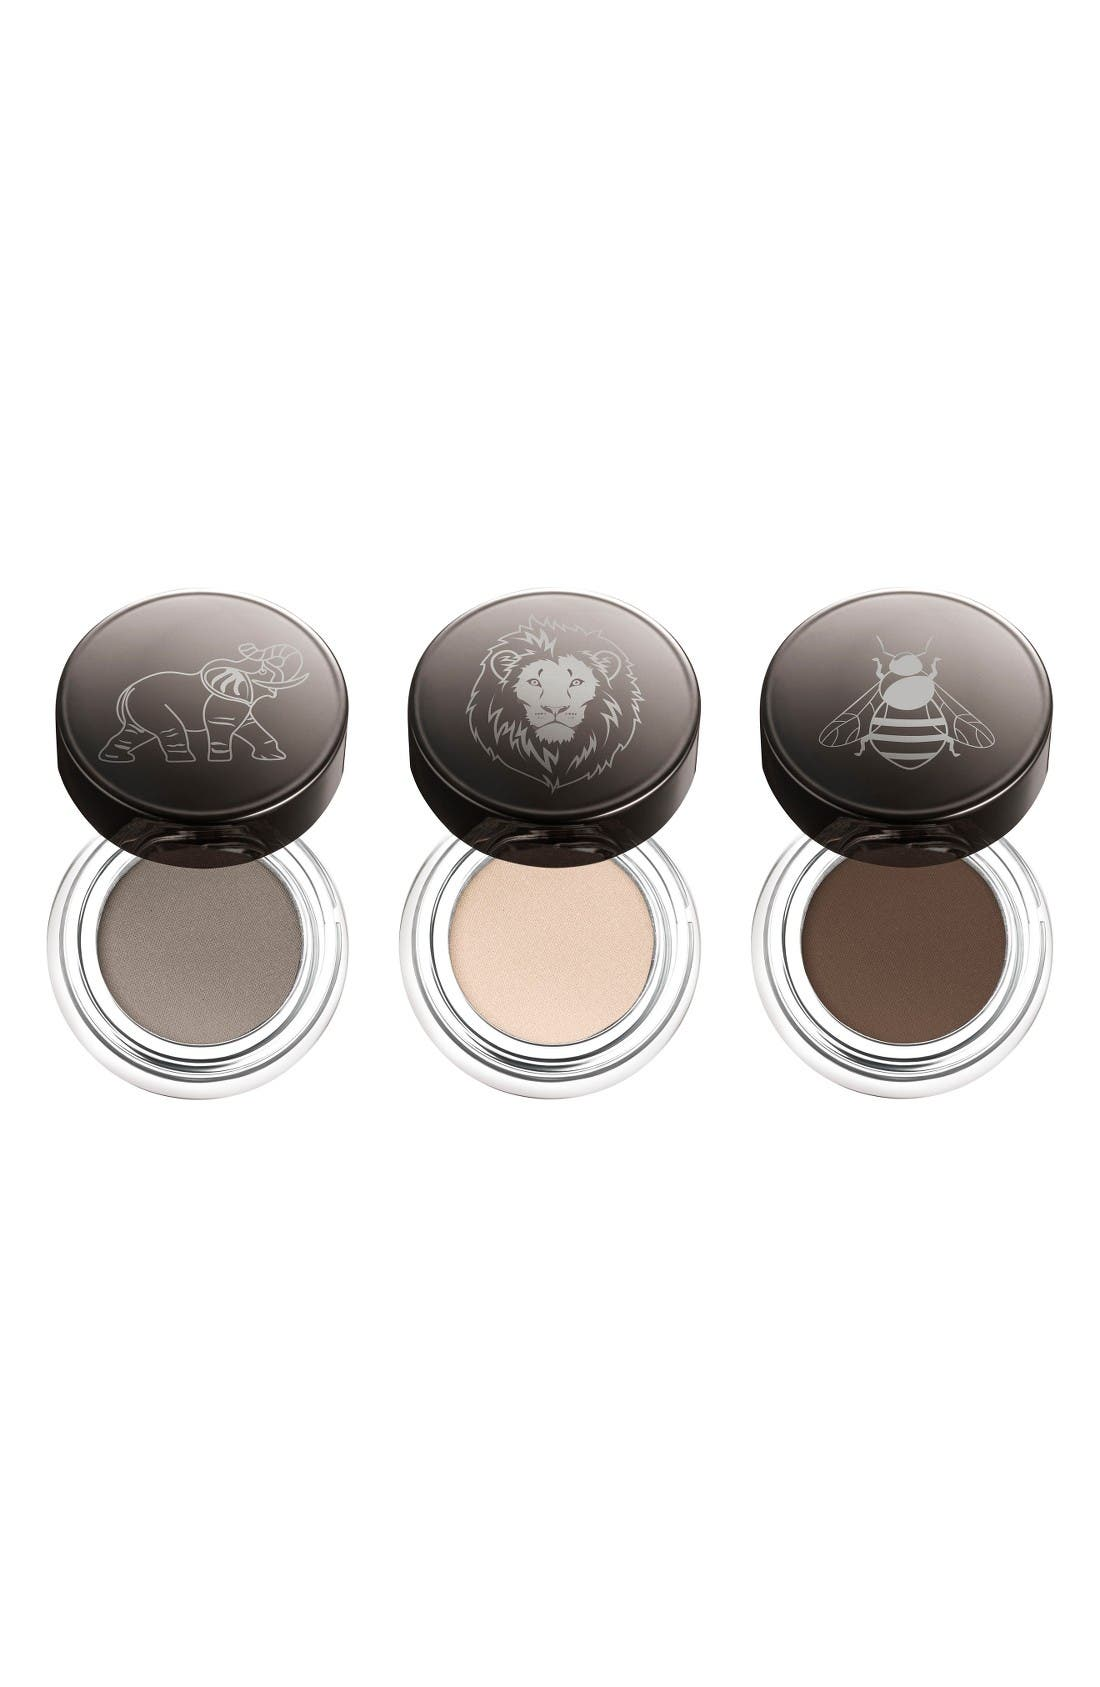 Main Image - Chantecaille 3 Mermaid Eye Matte Eyeshadow Trio (Limited Edition) ($102 Value)